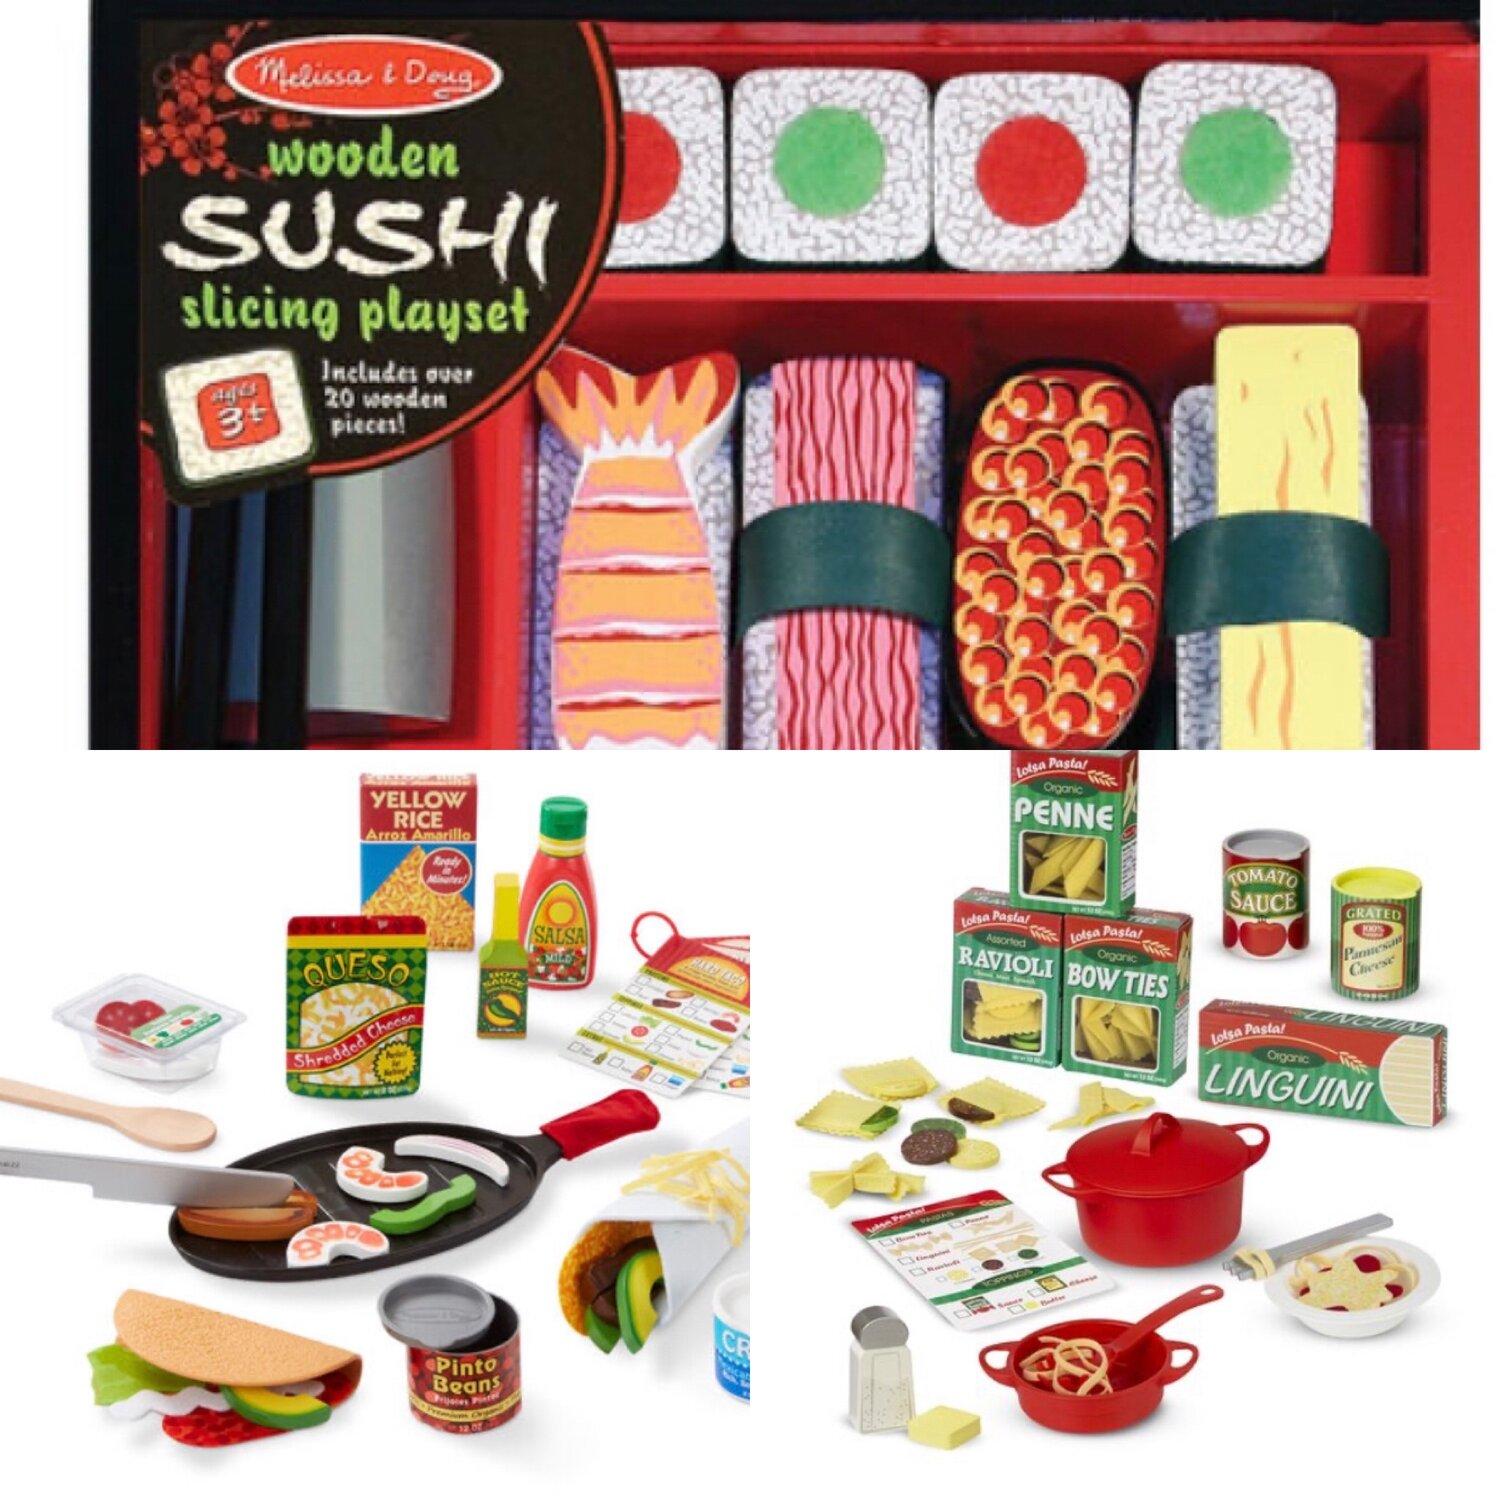 """[Image Description: Top: Melissa & Doug's Wooden Sushi Playset with various pieces of wooden sushi and chopsticks. Reads """"Wooden Sushi Slicing Playset. Includes over 20 wooden pieces"""". Bottom Left: Melissa & Doug Mexican Food Playset. There is play food including a jar of salsa, a bottle of hot sauce, a box of yellow rice, a bag of queso, a wooden spoon and knife, a skillet with wooden shrimp and vegetables, toy taco, toy burrito, and a toy can of pinto beans. Bottom Right: Melissa & Doug Italian Food Playset. Four pretend boxes of pasta including Penne, Ravioli, Linguini, and Bow Ties. There is fabric pasta inside the boxes. Also pictured are a menu, pot and pan, as well as a fork, butter, and wooden salt shaker.]"""